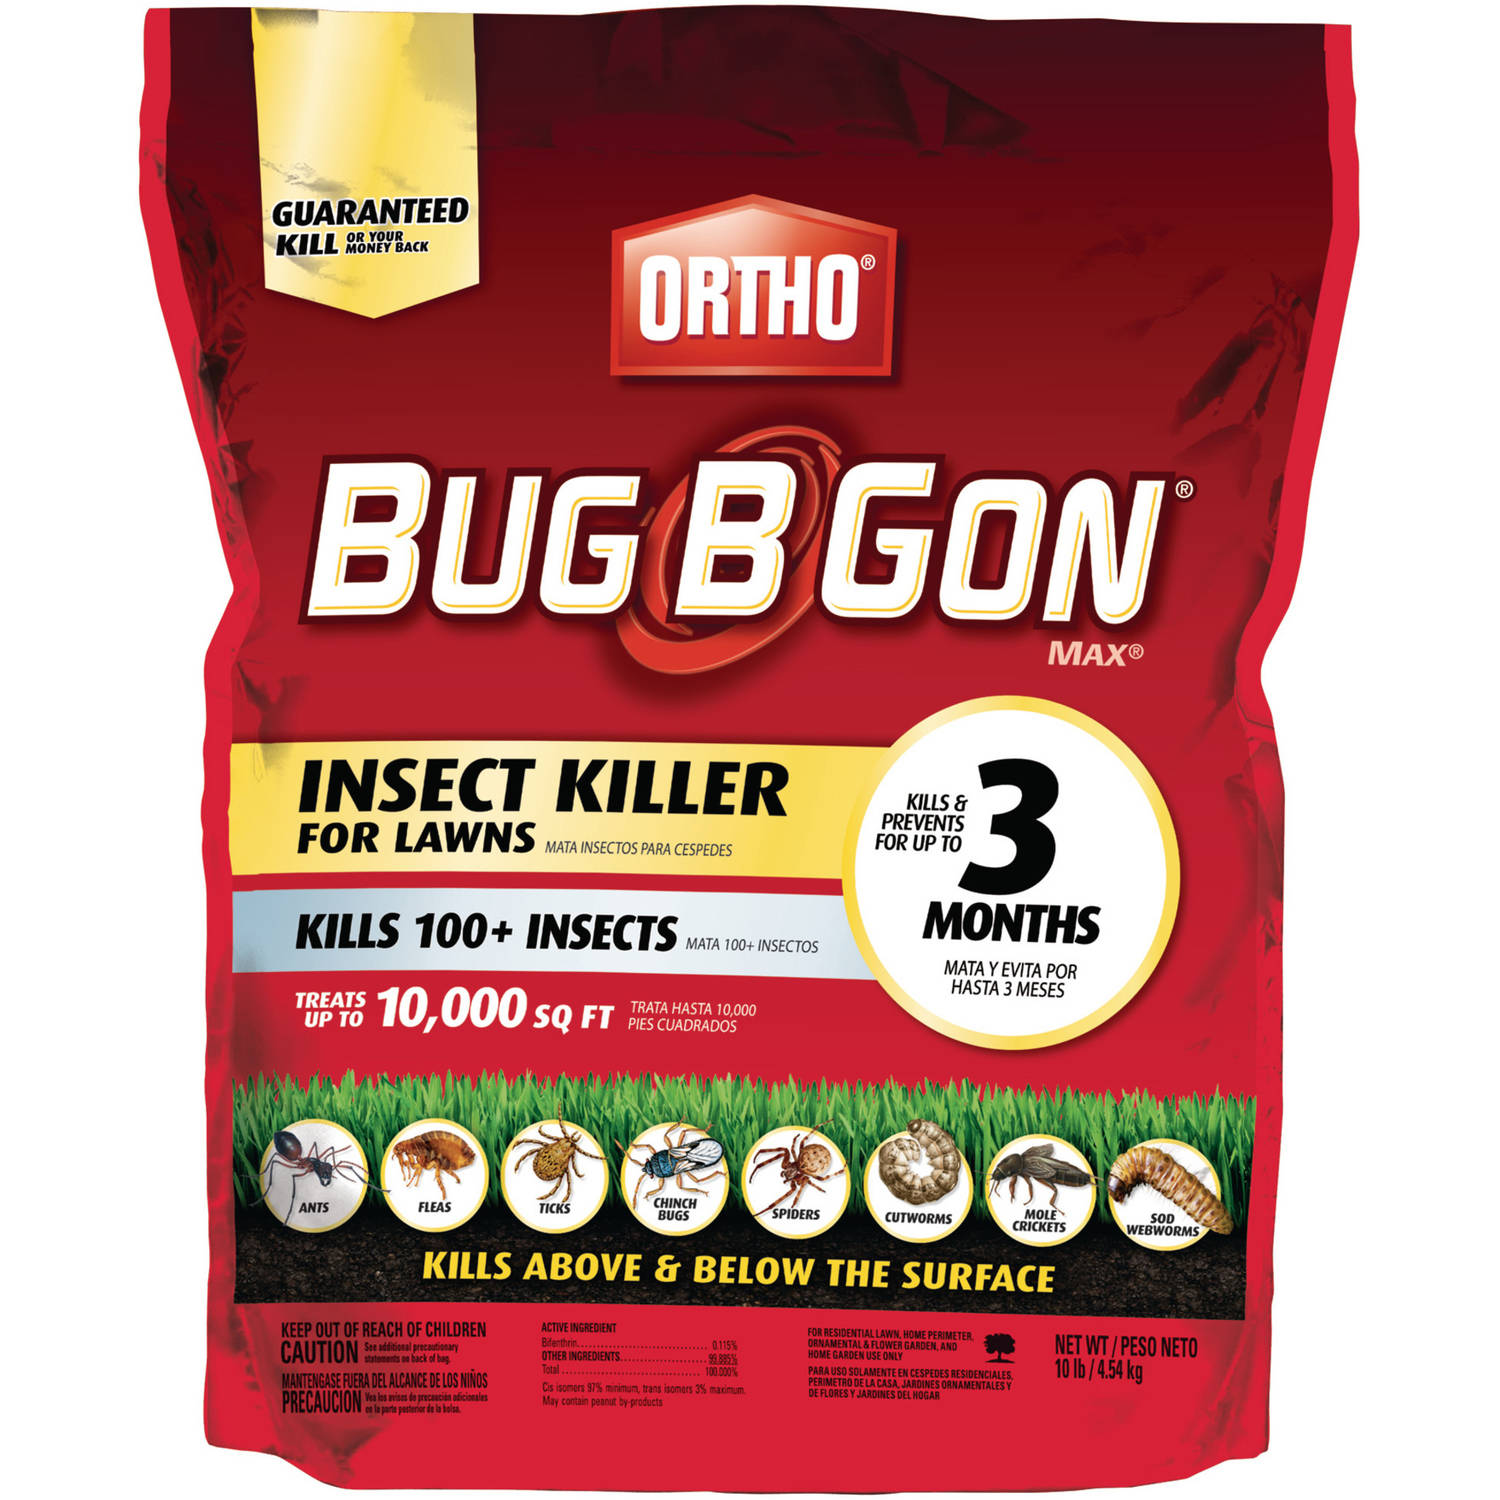 Ortho Bug B Gon MAX Insect Killer for Lawns Granules, 10 lbs